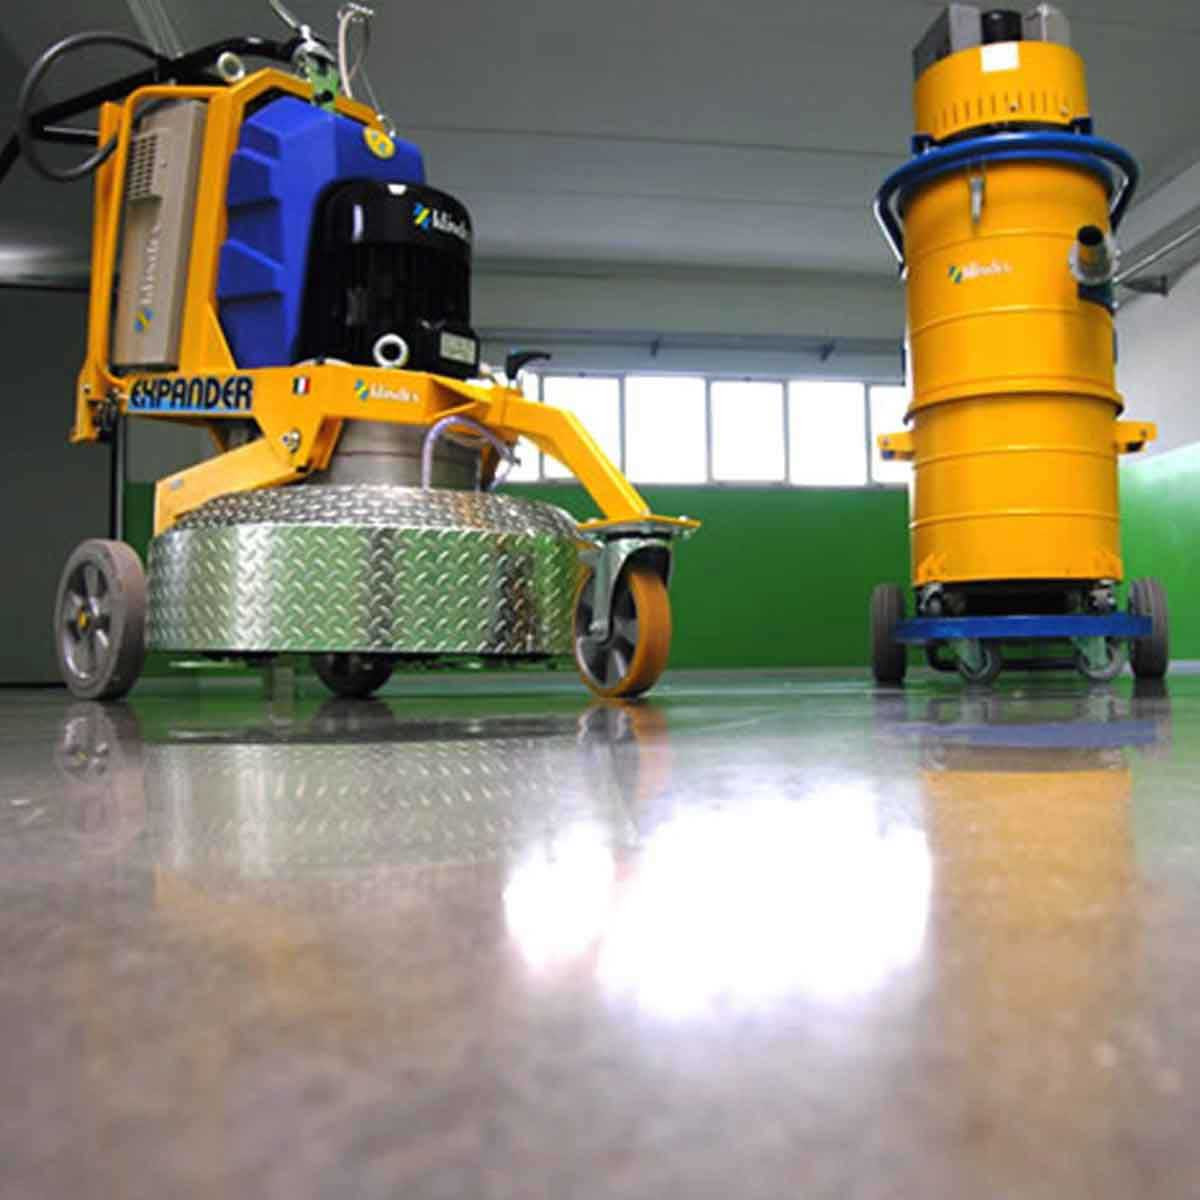 Klindex Floor Grinder and vacuum